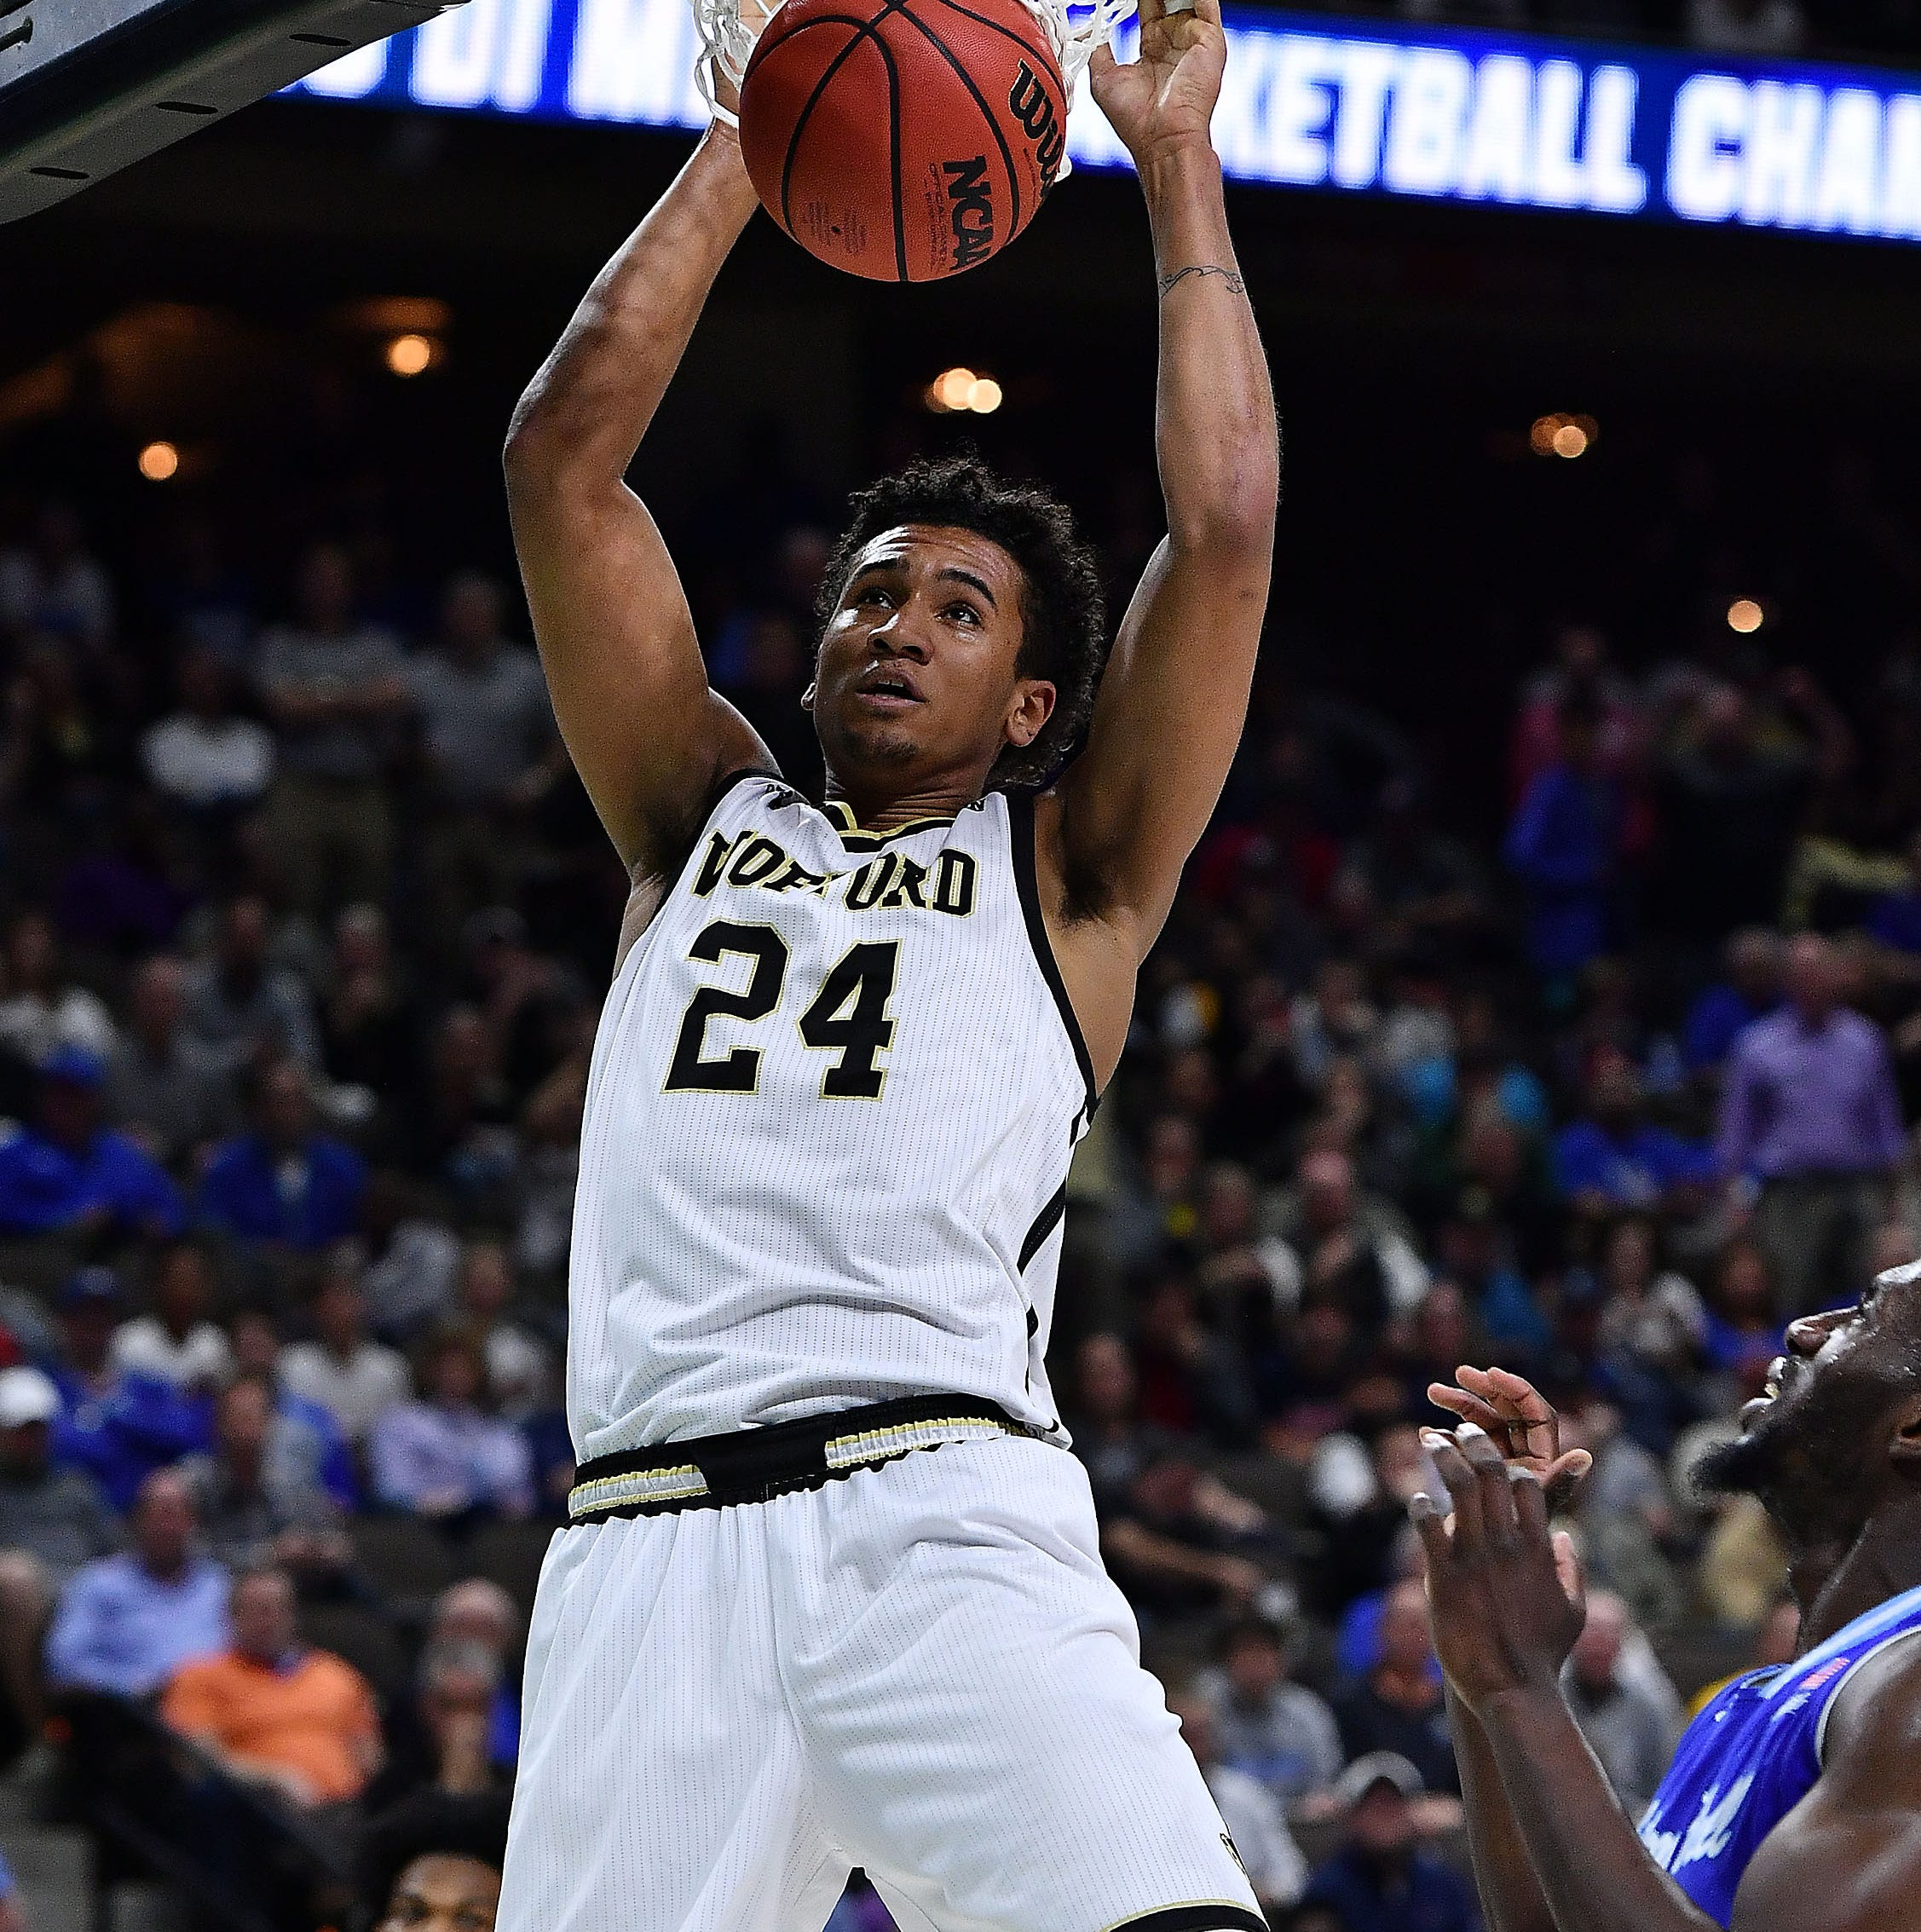 March Madness: Decatur grad Aluma helps Wofford to historic NCAA tournament victory